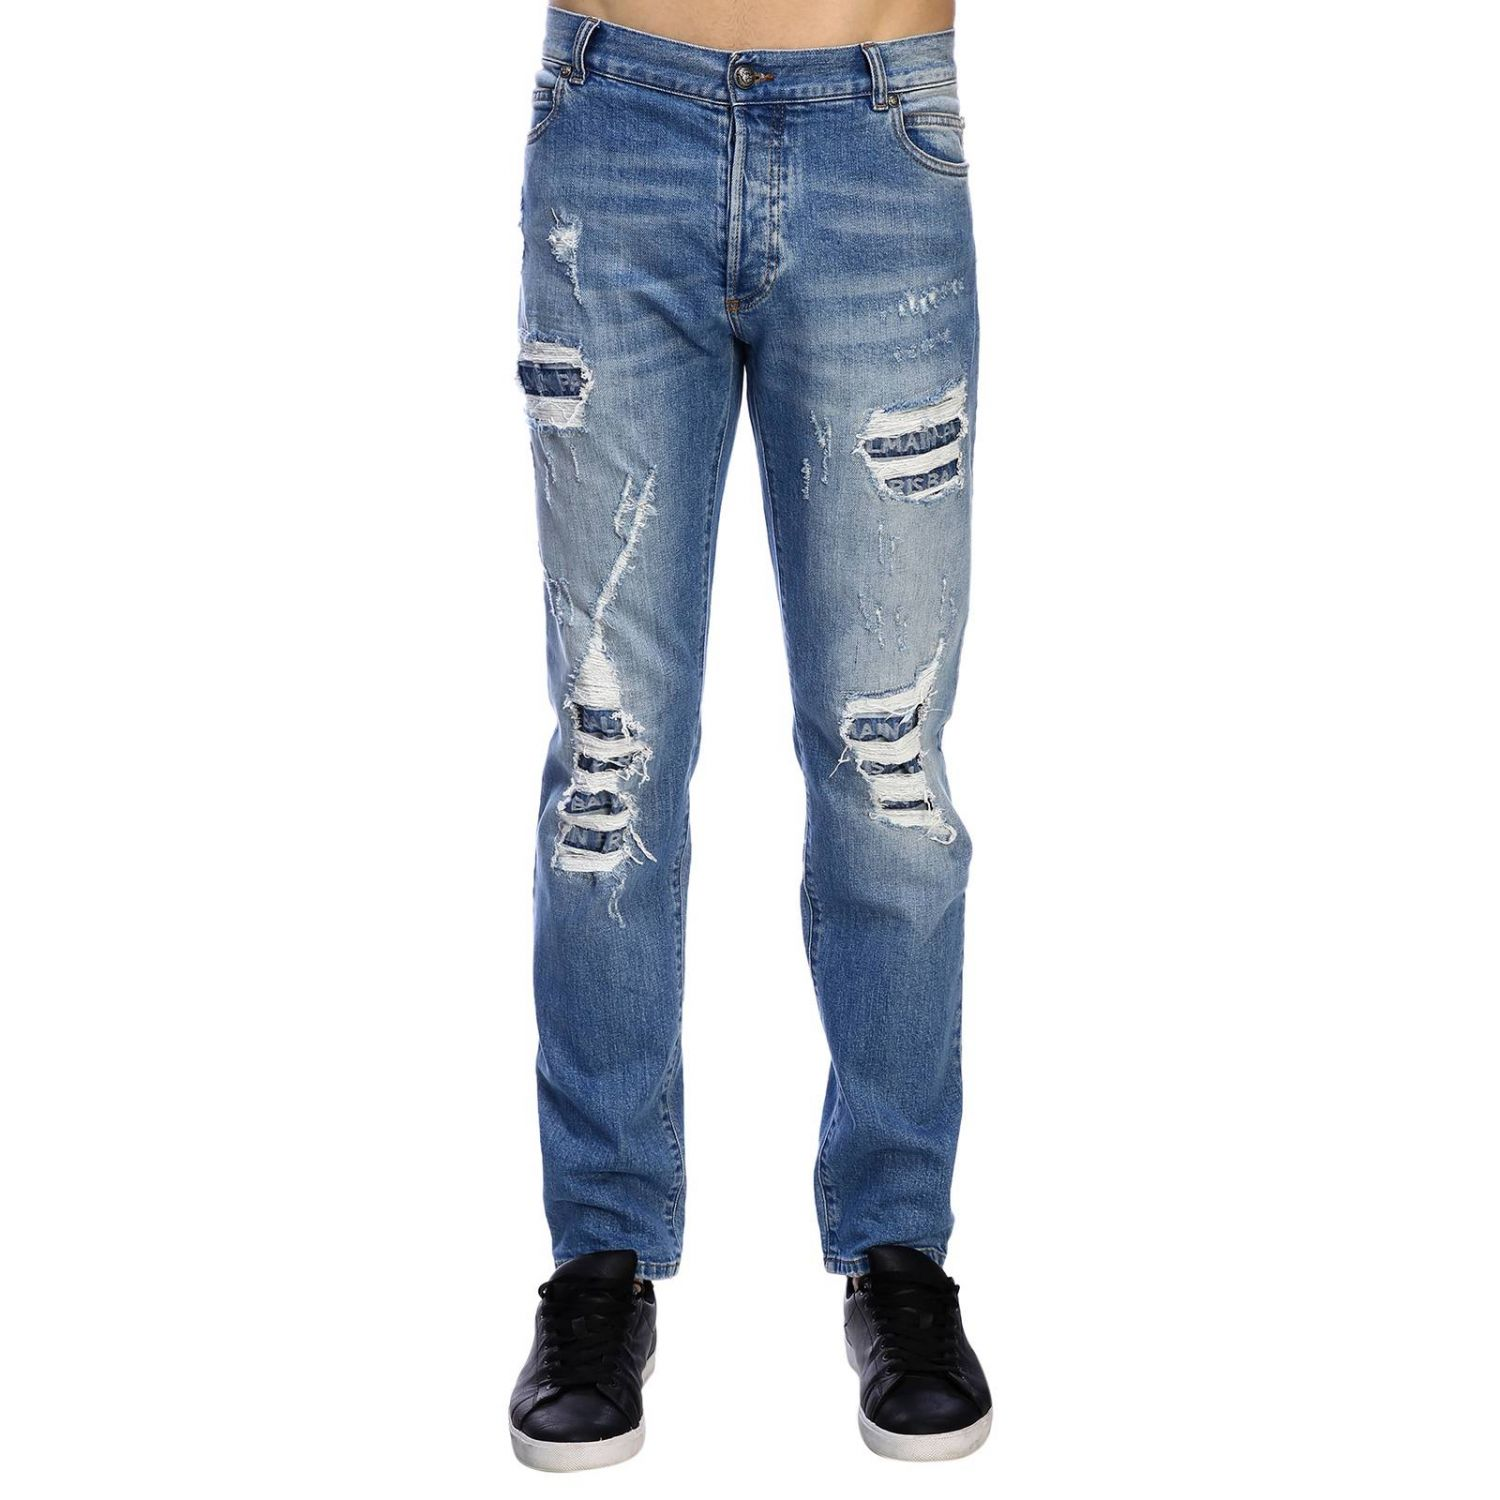 Jeans Balmain: Balmain slim fit jeans in used effect denim with maxi breaks and logoed patches stone washed 1